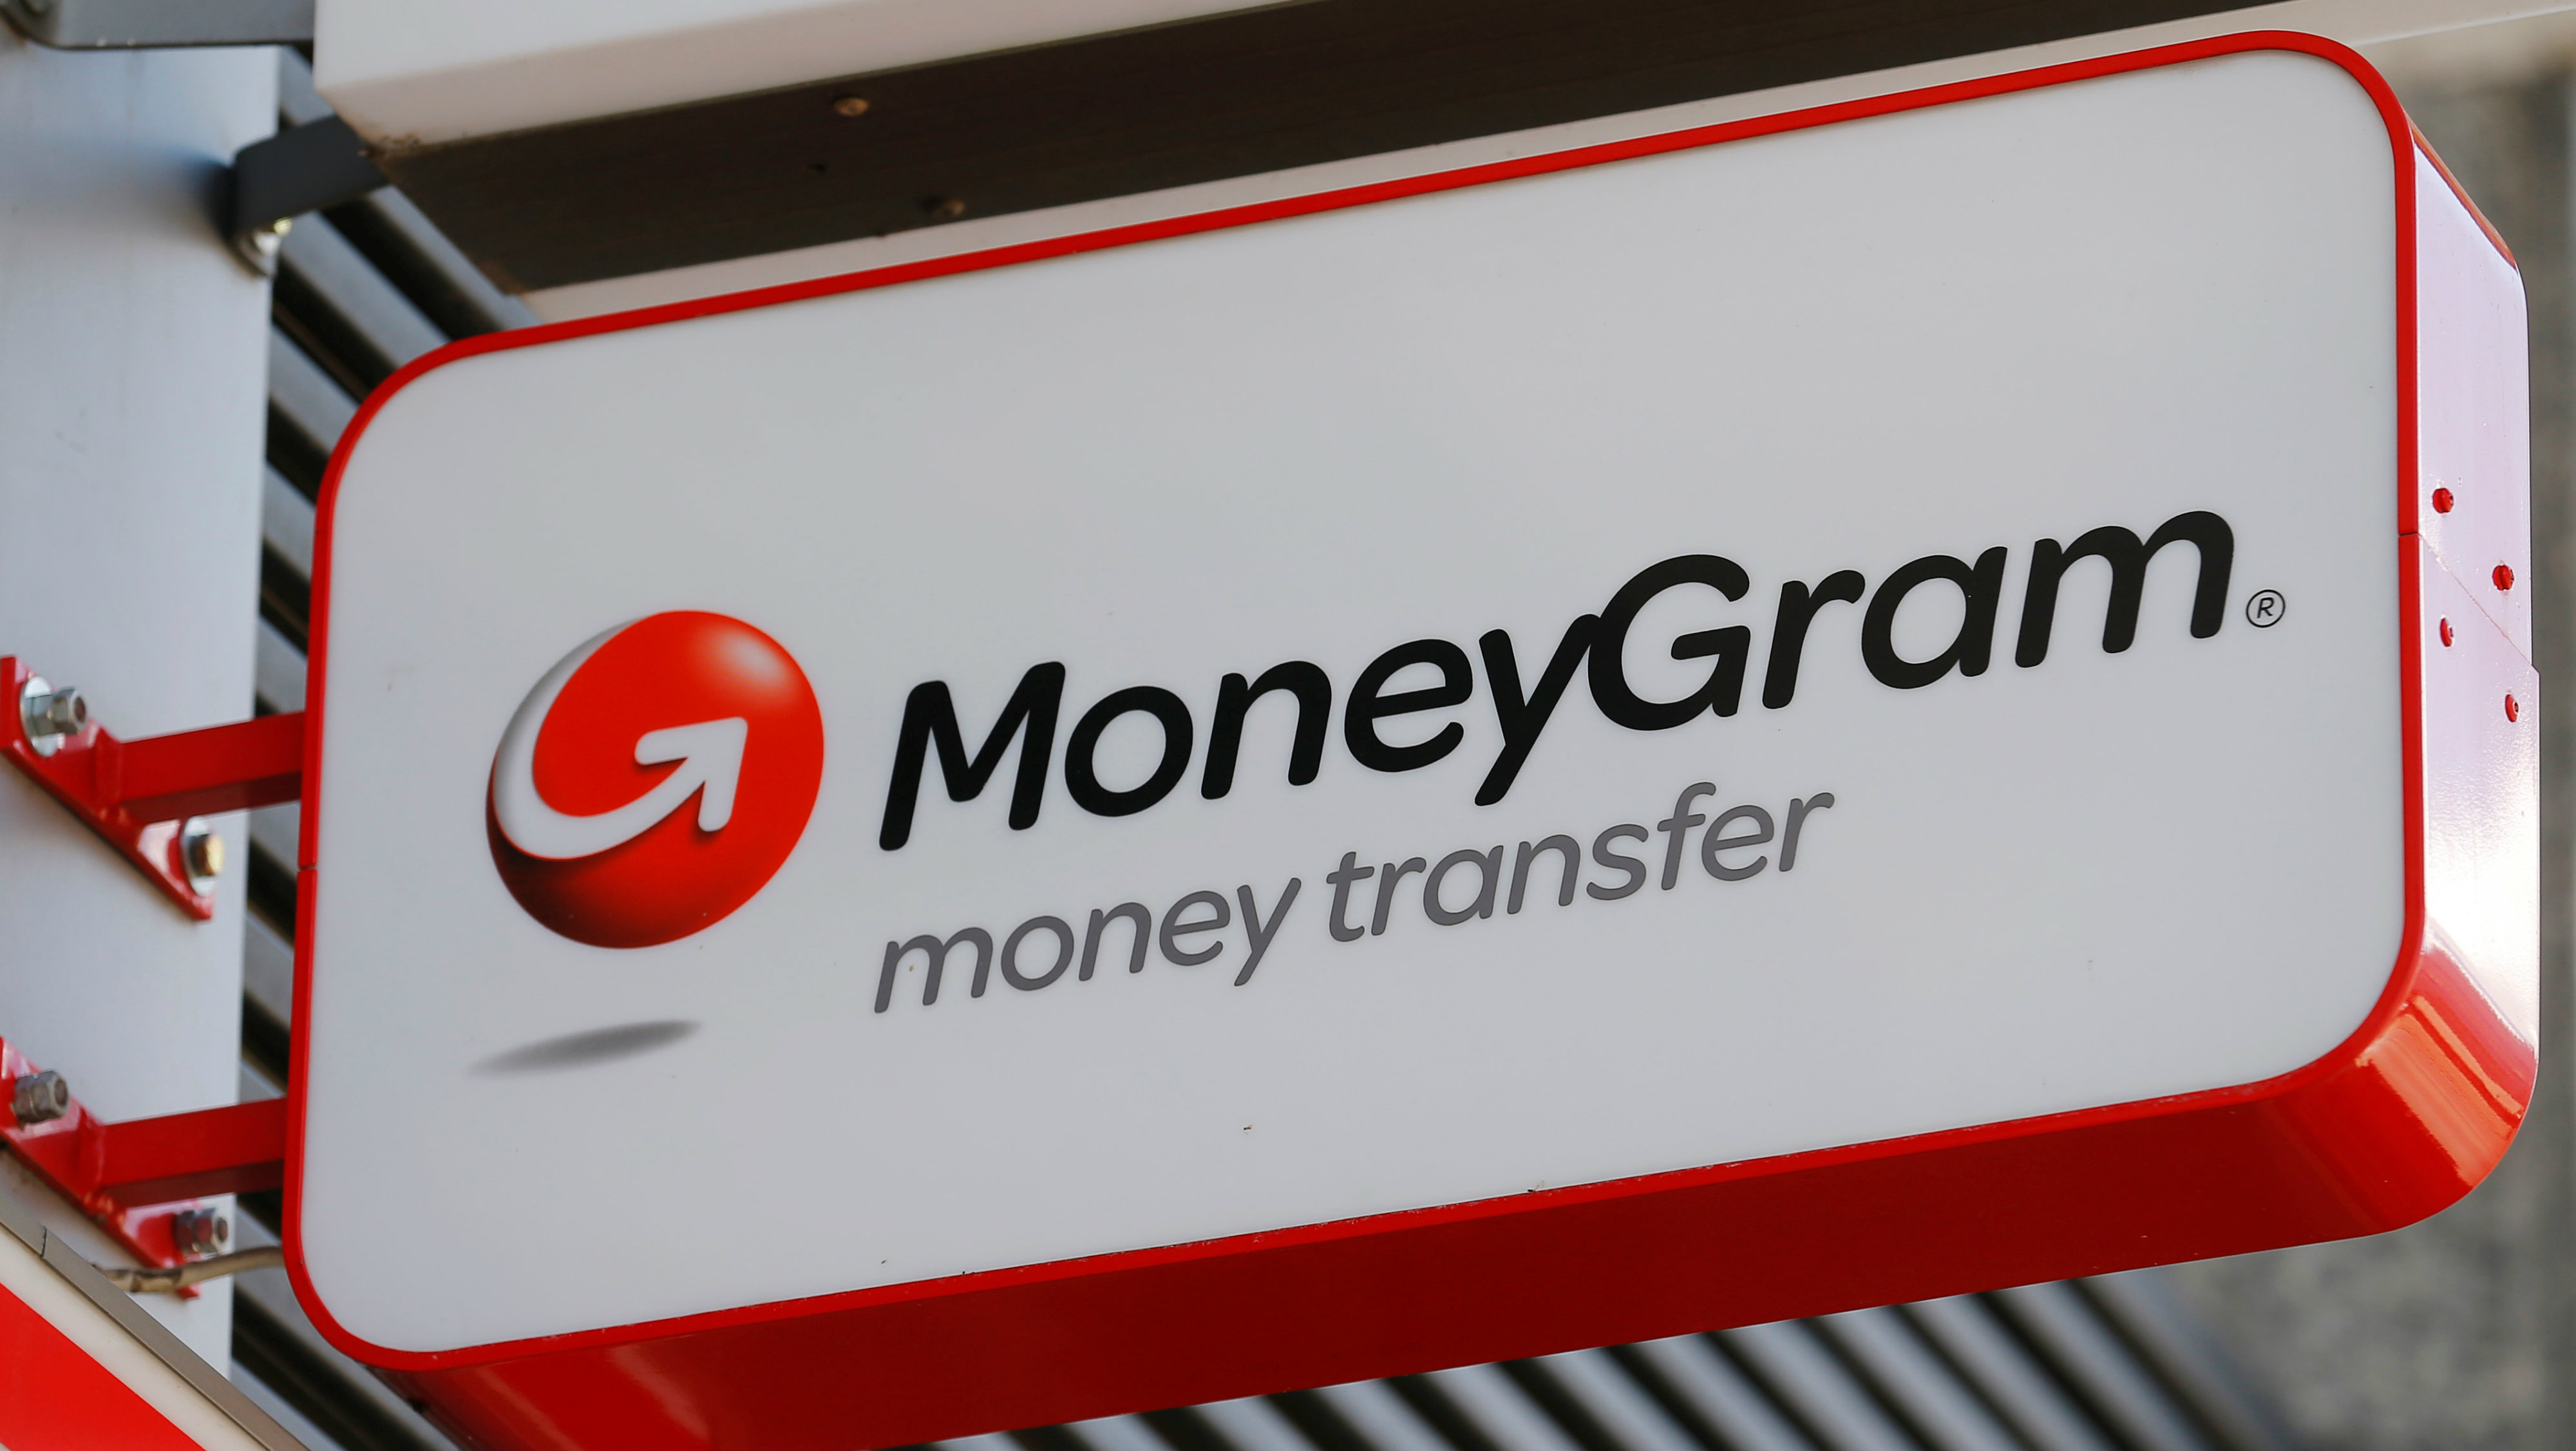 Alibaba affiliate Ant Financial's acquisition of MoneyGram